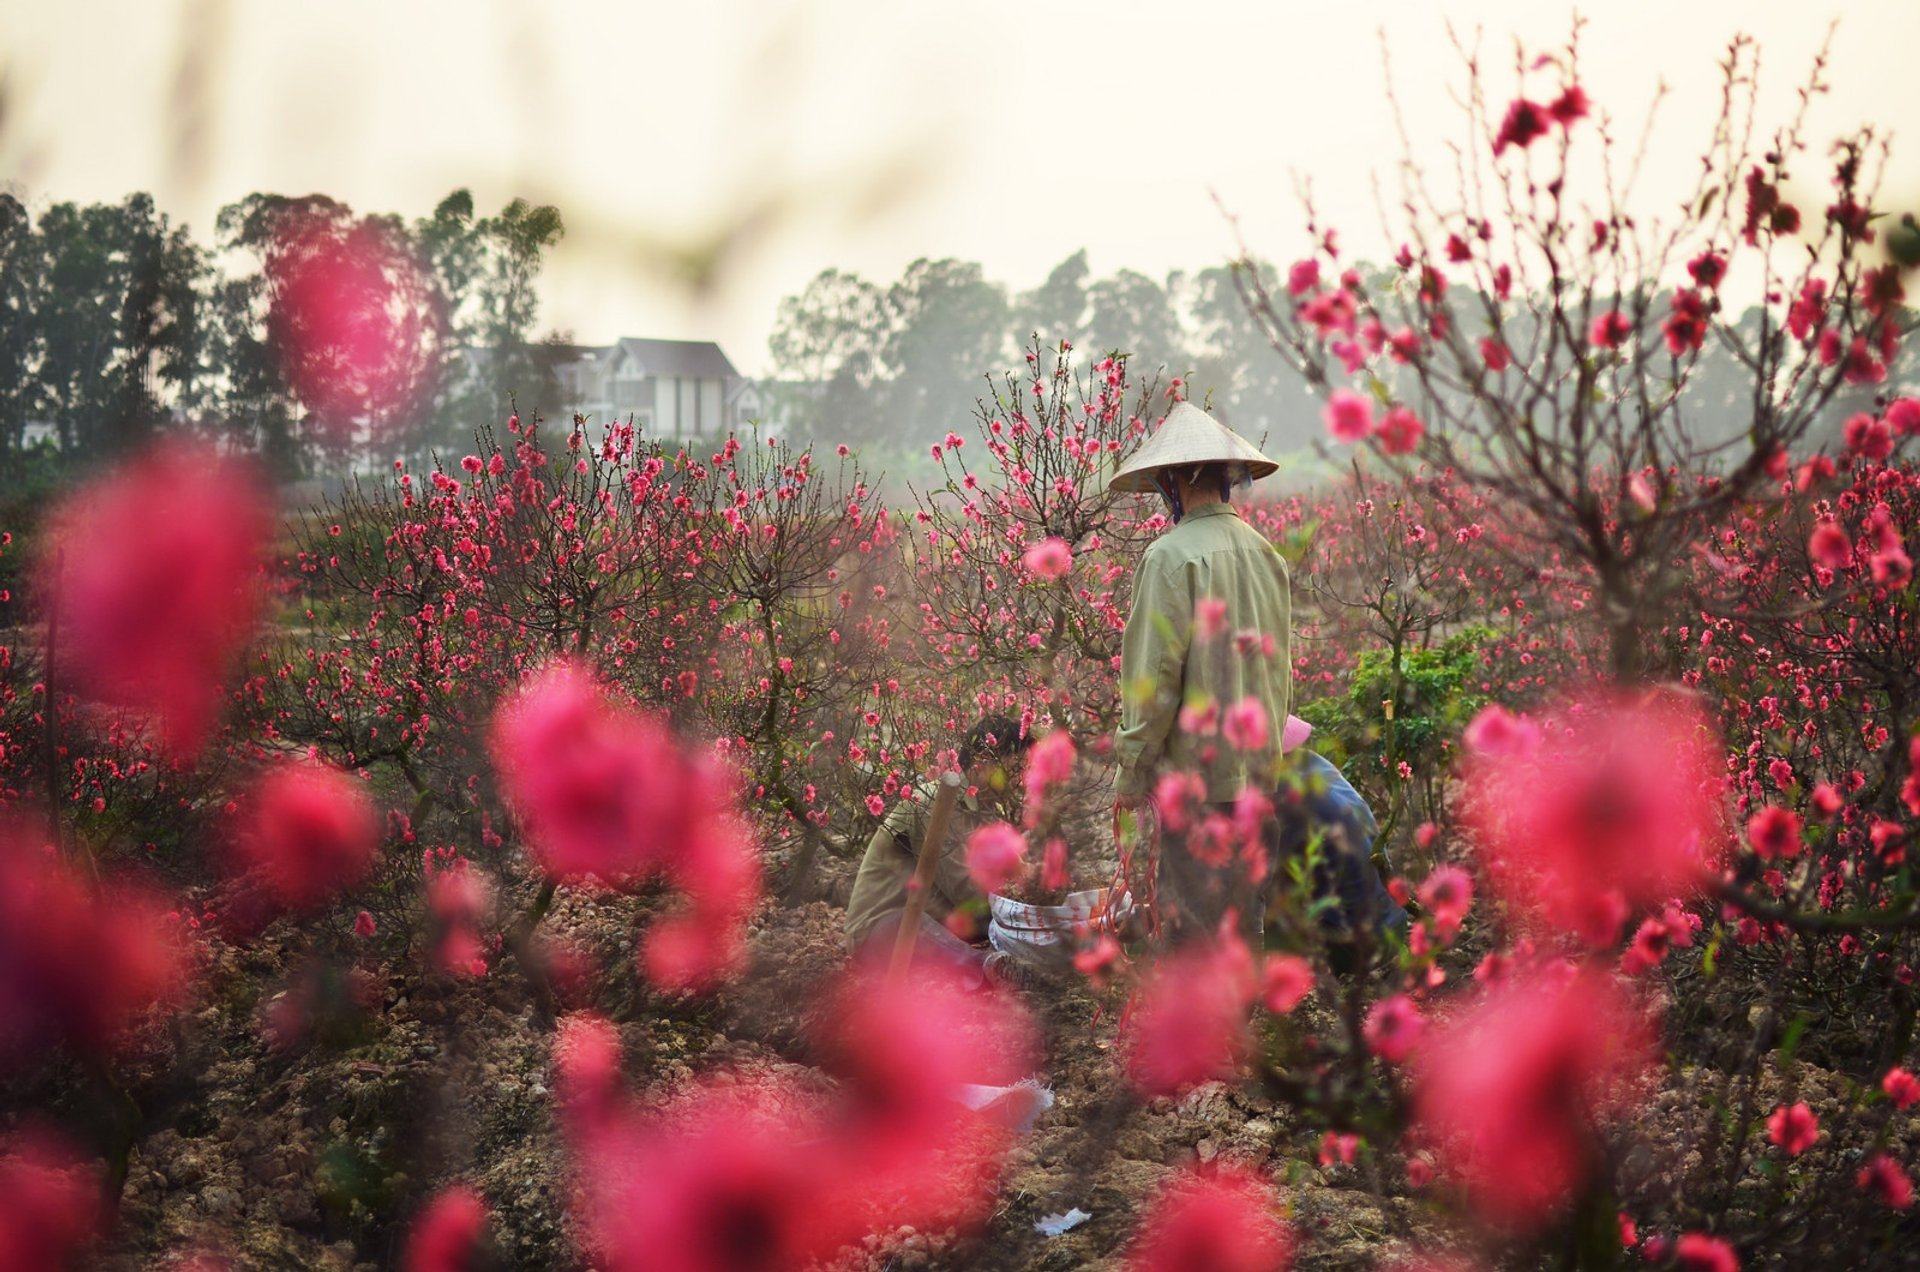 Peach Blossom Season in Vietnam 2020 - Best Time